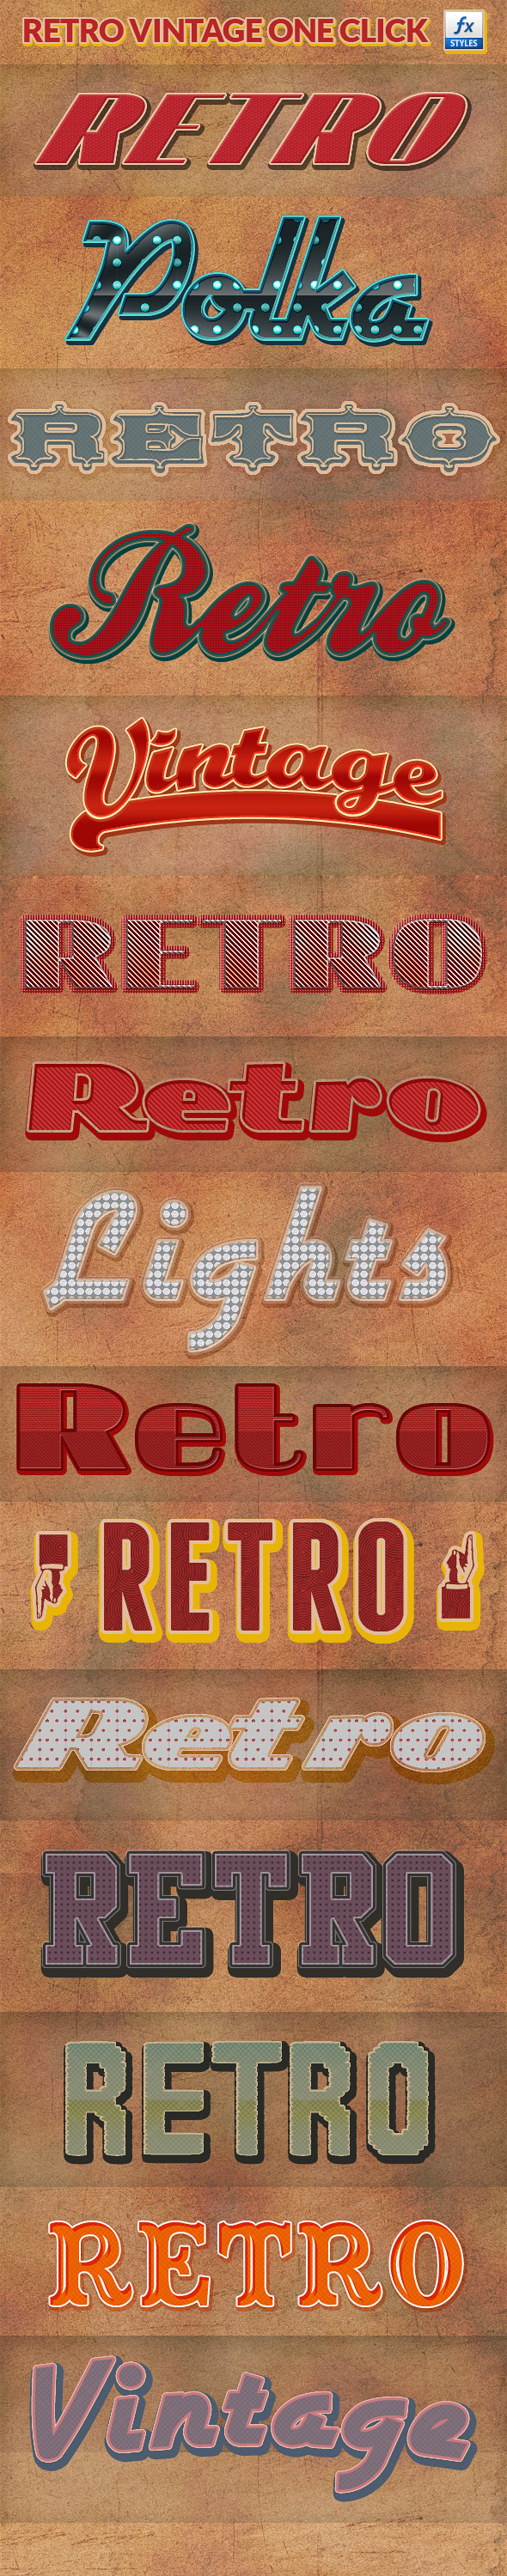 Retro Vintage Photoshop Layer Styles - Text Effects Actions